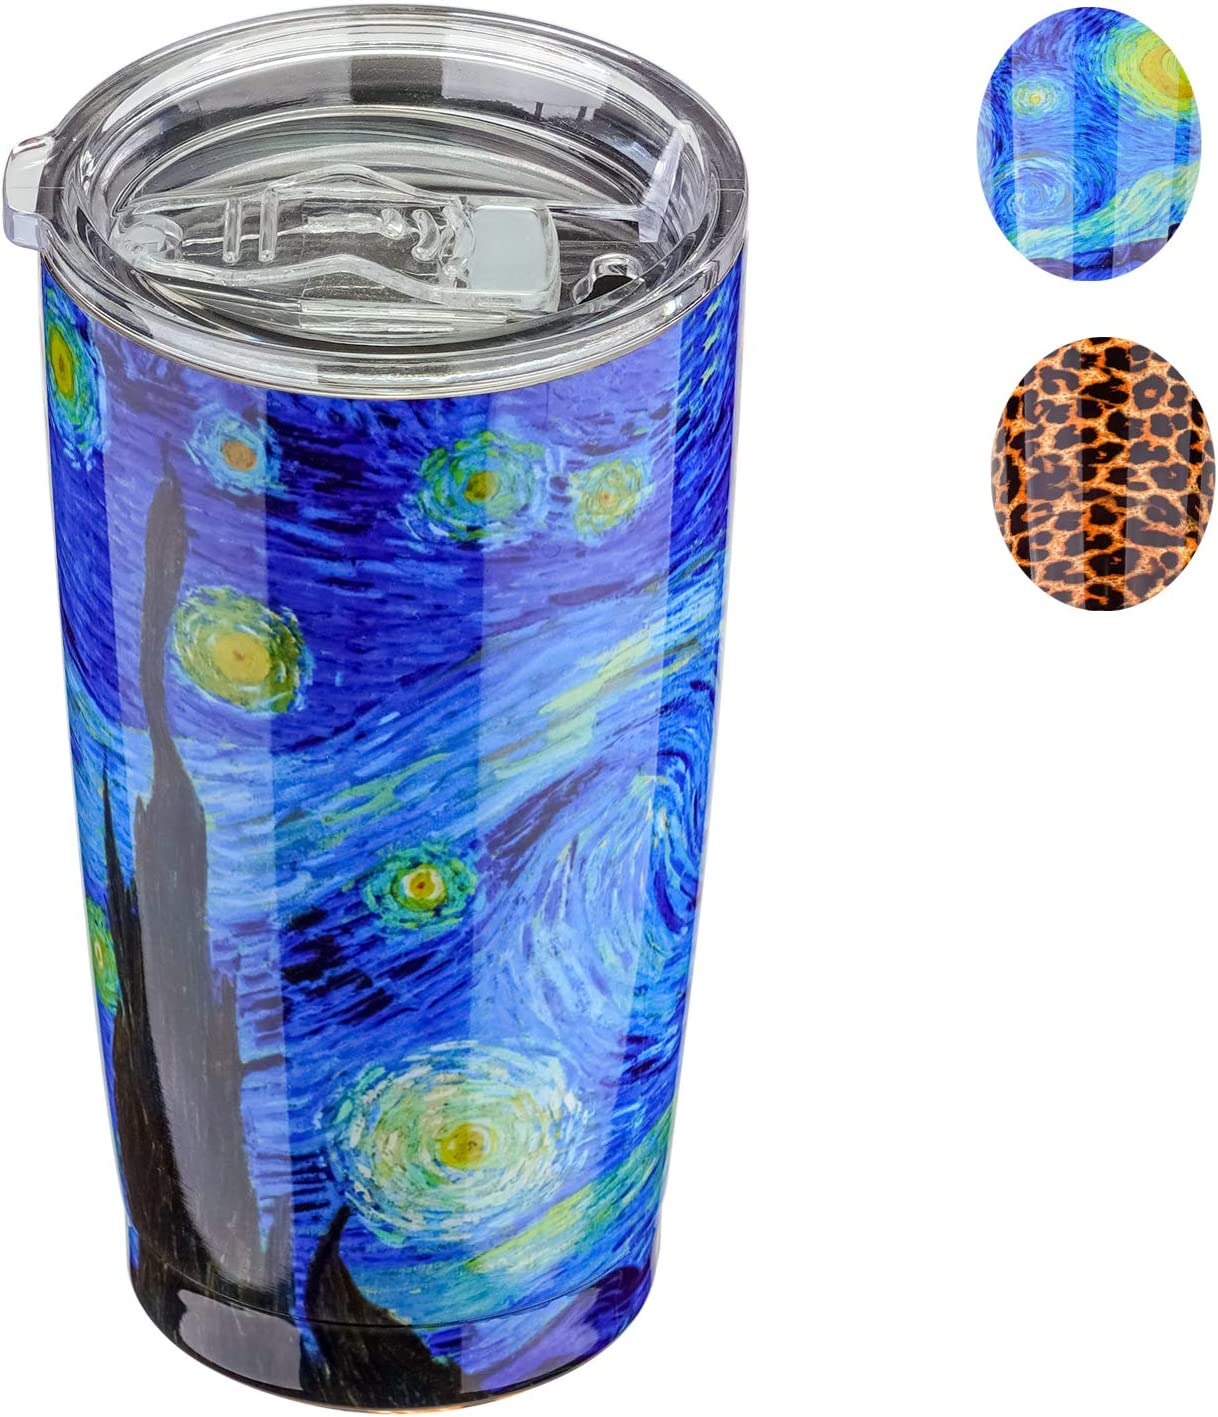 20 oz Tumbler with Lid,18/8 Stainless Steel Vacuum Insulated Tumbler,Double Wall Water Coffee Cup,Insulated Travel Mug,Thermal Cup with Splash Proof Slide Lid (Starry Night)